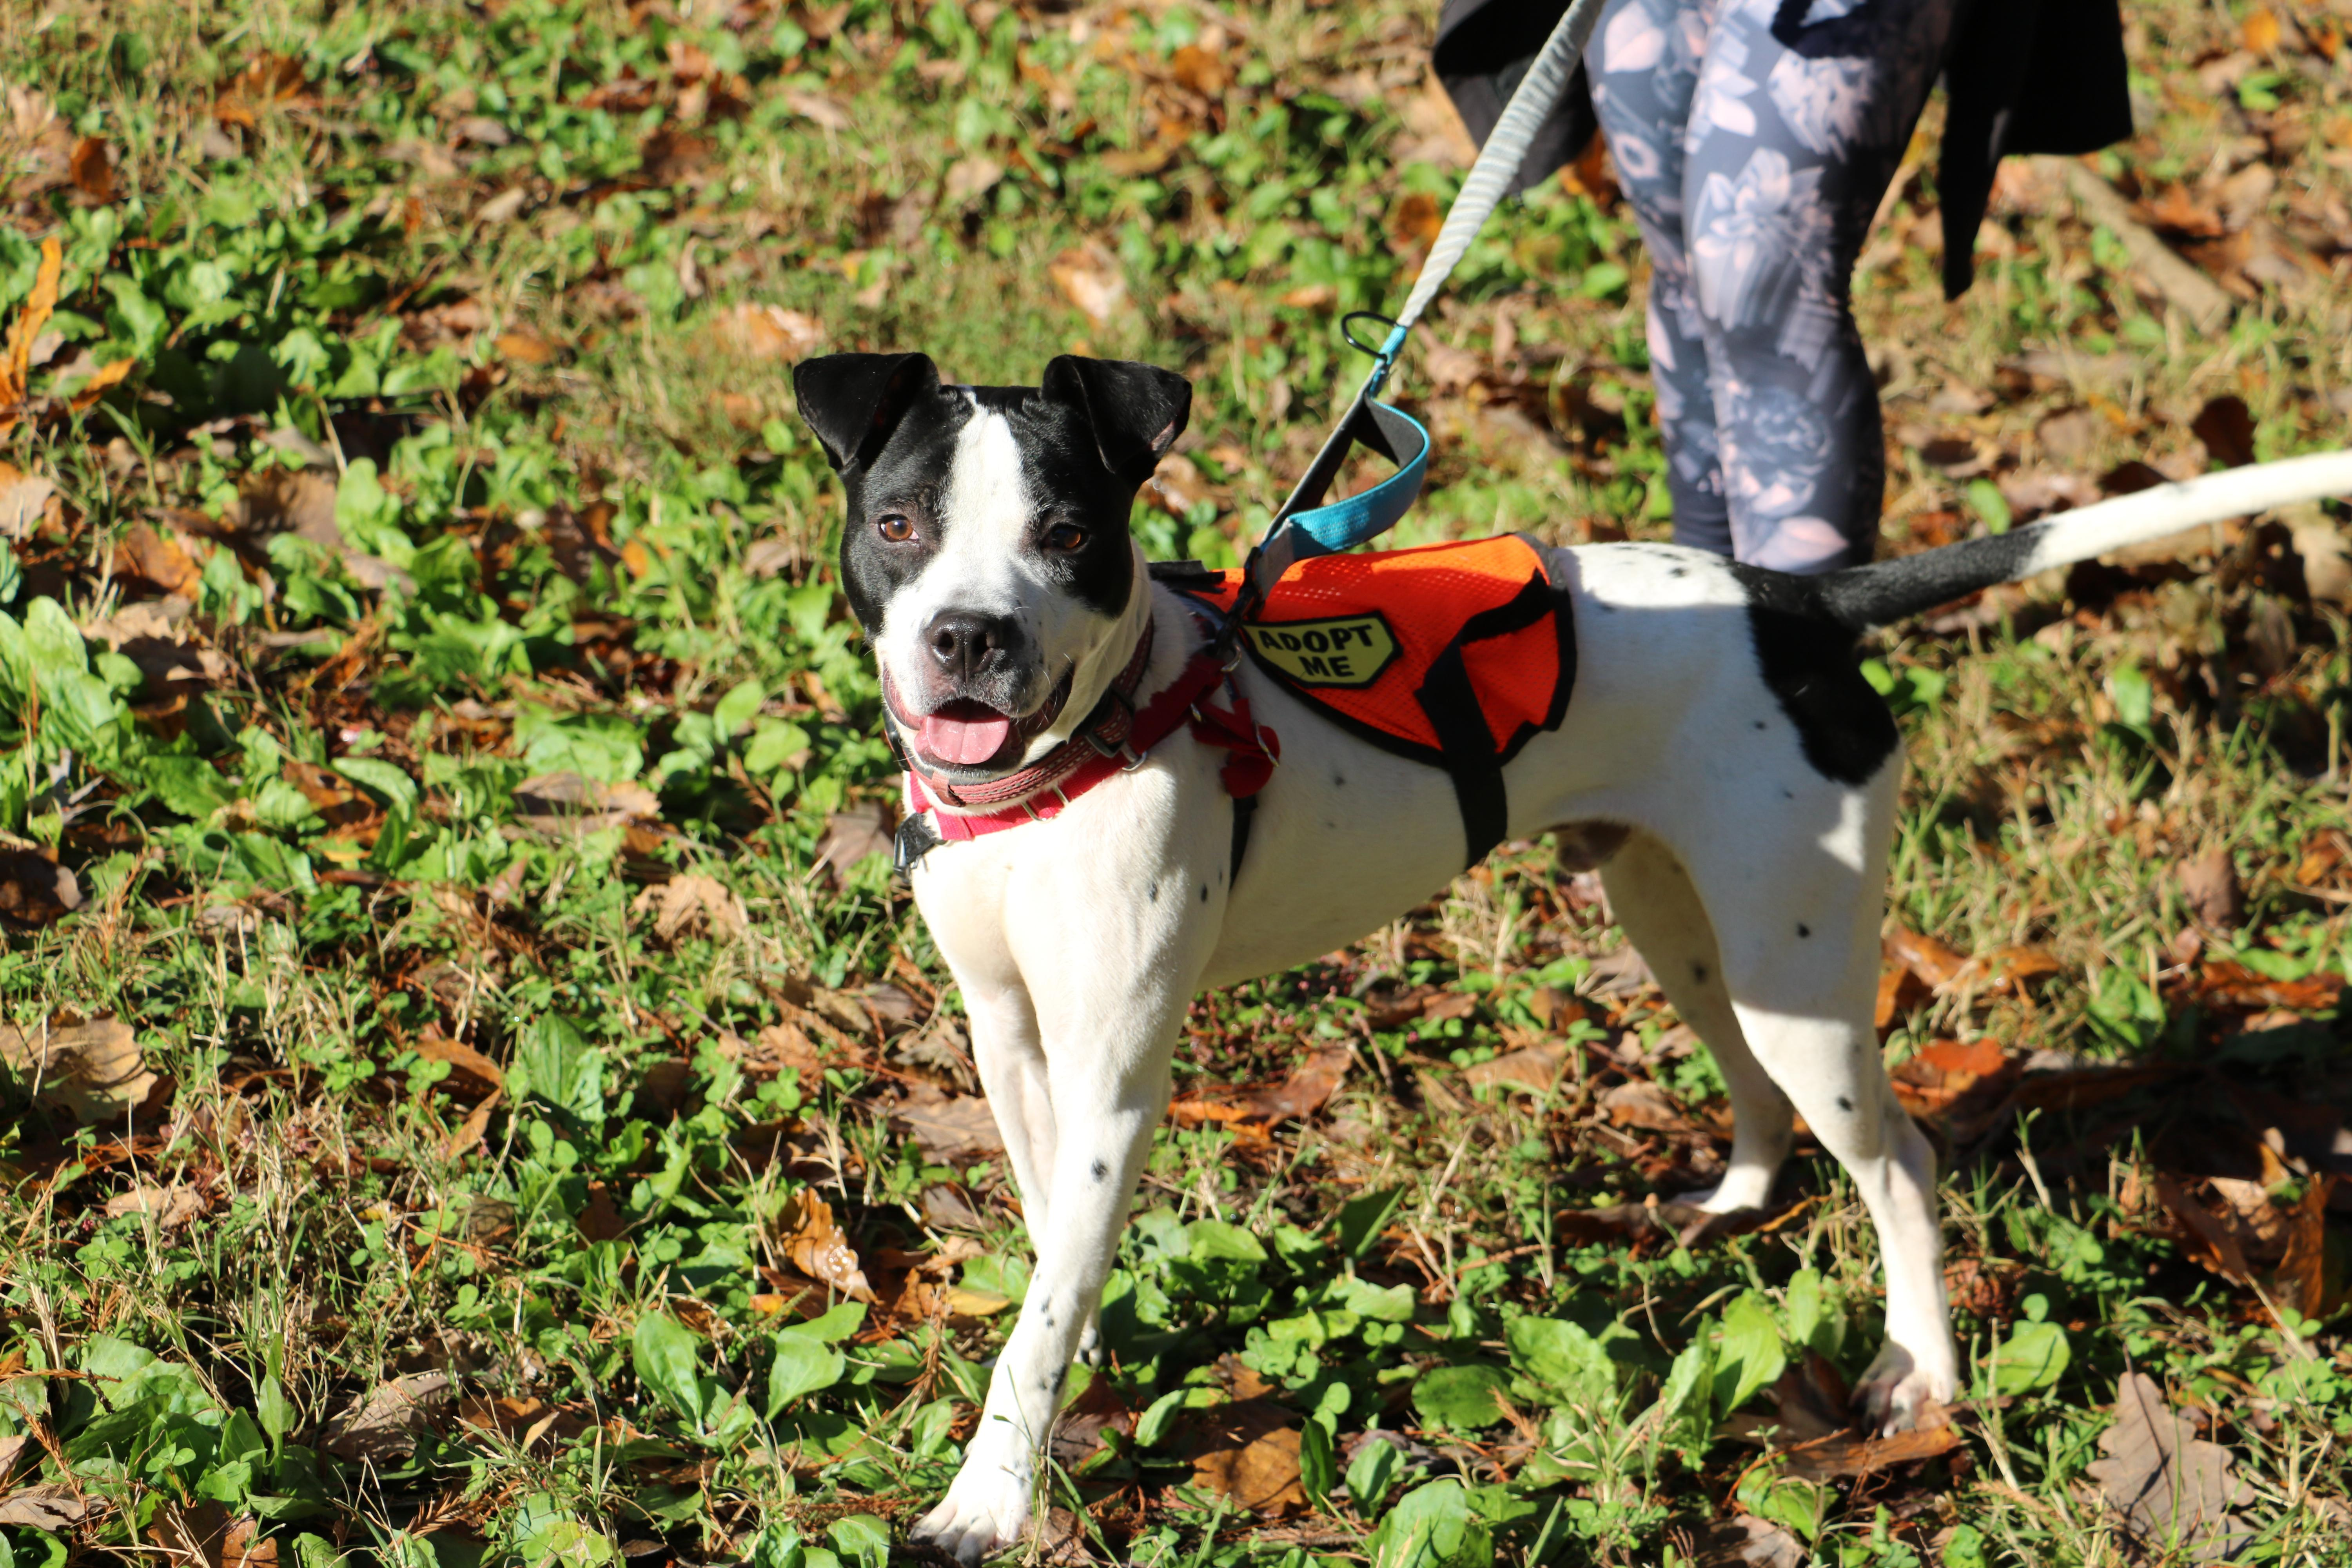 If Oggie sounds like the ideal dog for you, come out to HRA's Oglethorpe Street Adoption Center to meet Oggie today! (Image: Courtesy HRA)